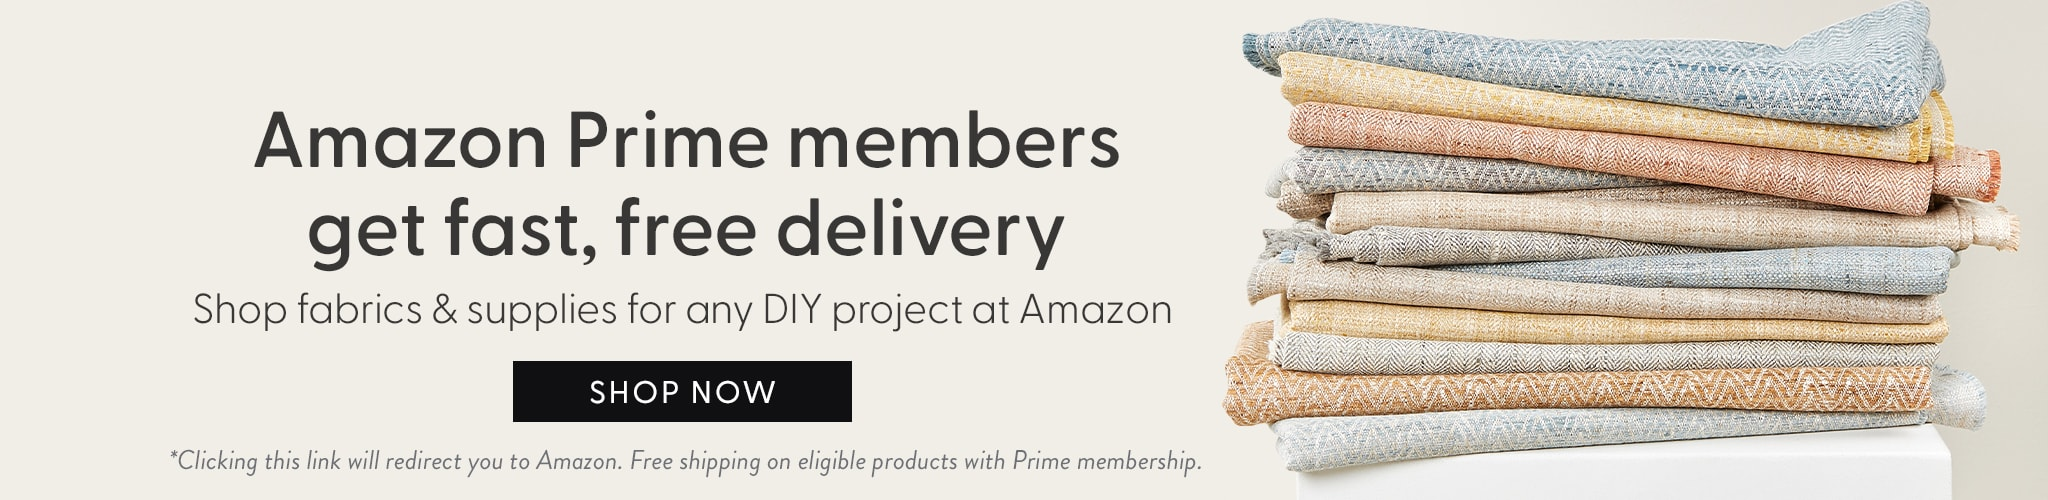 Amazon Prime members get fast, free delivery. Shop fabric & supplies for any DIY project at Amazon